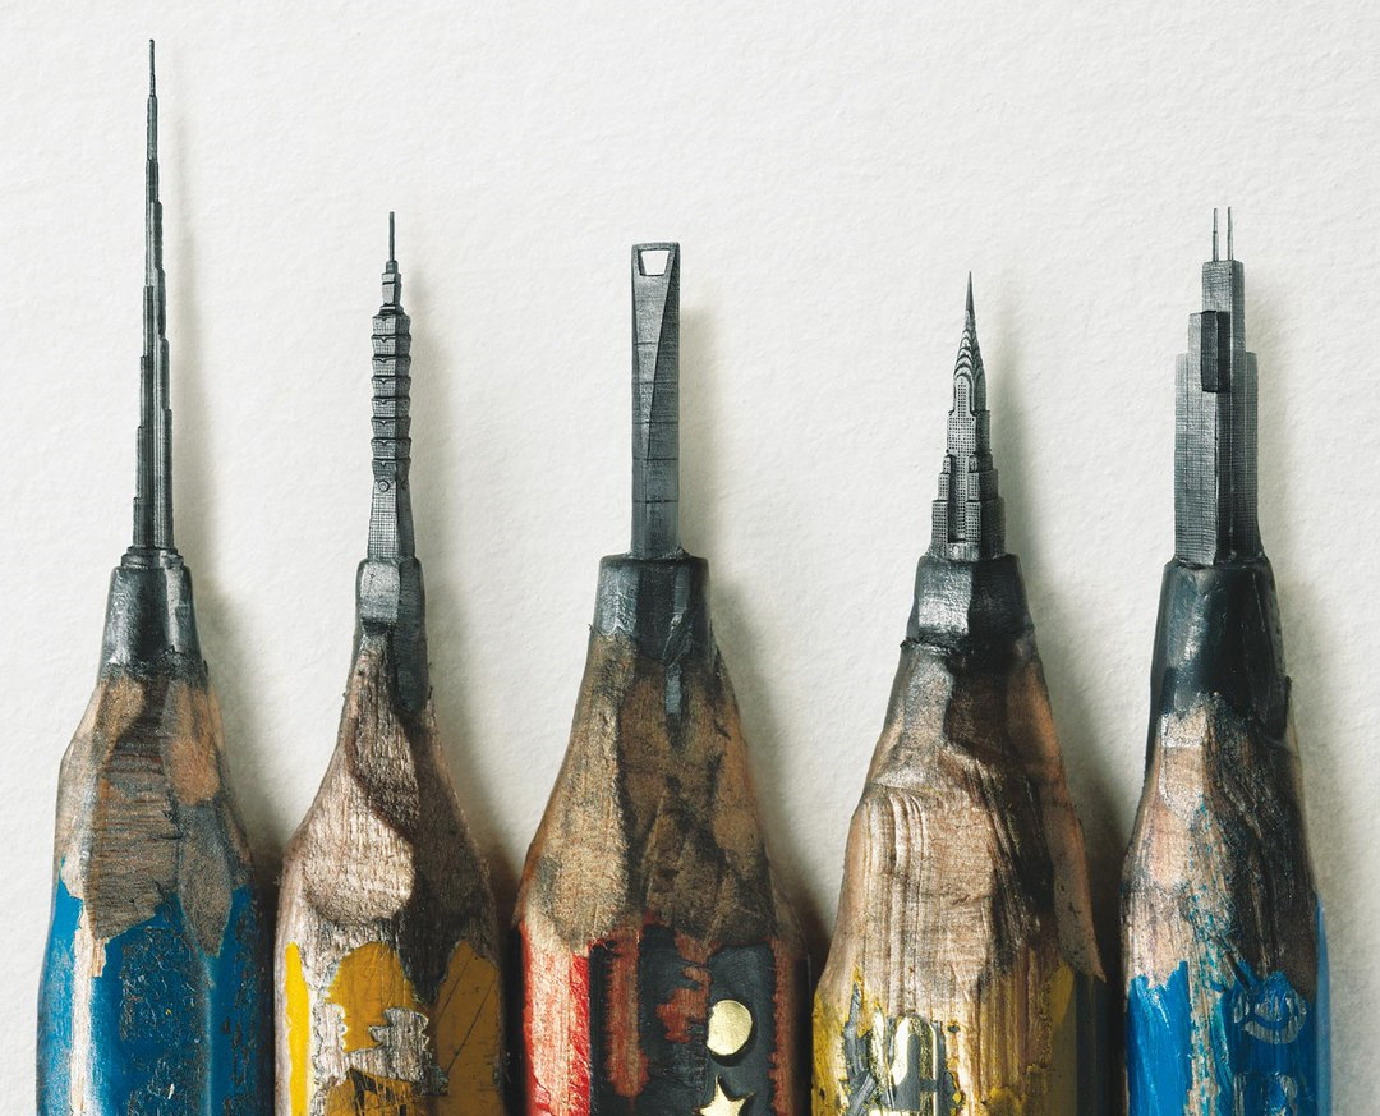 Building-shaped-pencil-leads